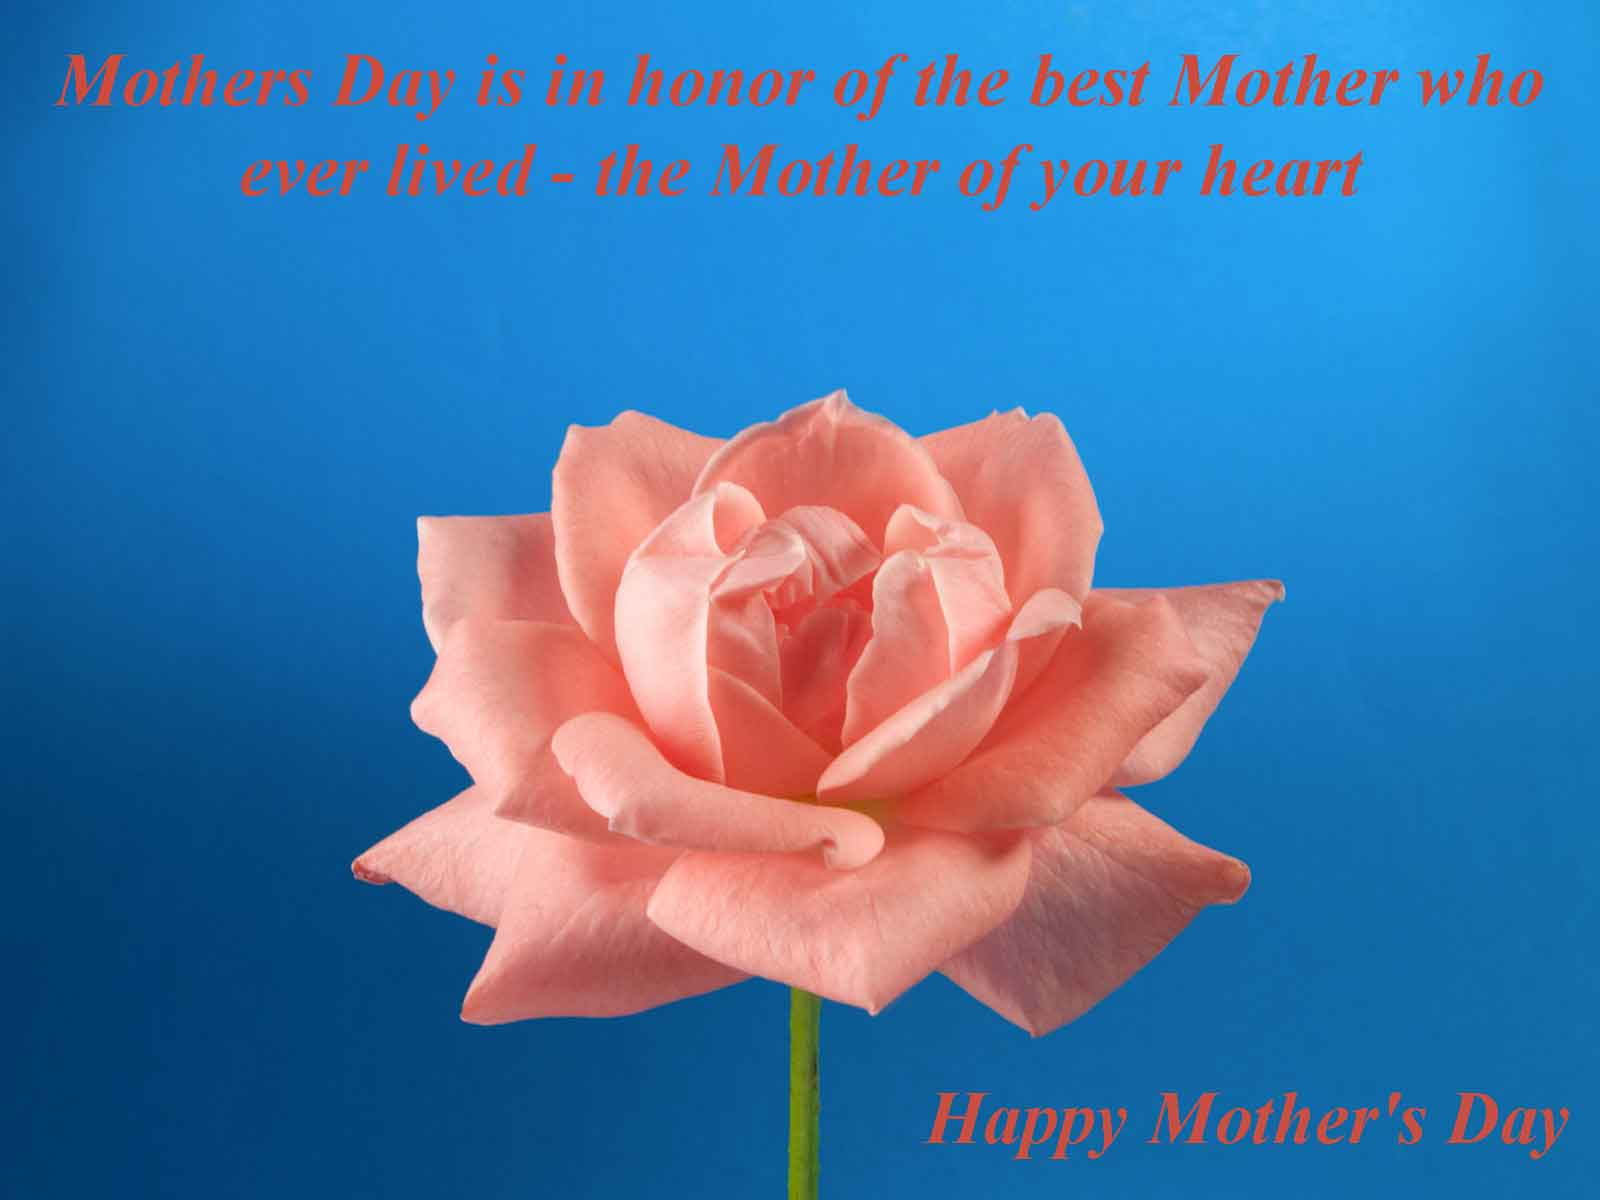 Mothers Day Beautiful Quotes Wallpapers Cool Christian Wallpapers 1600x1200